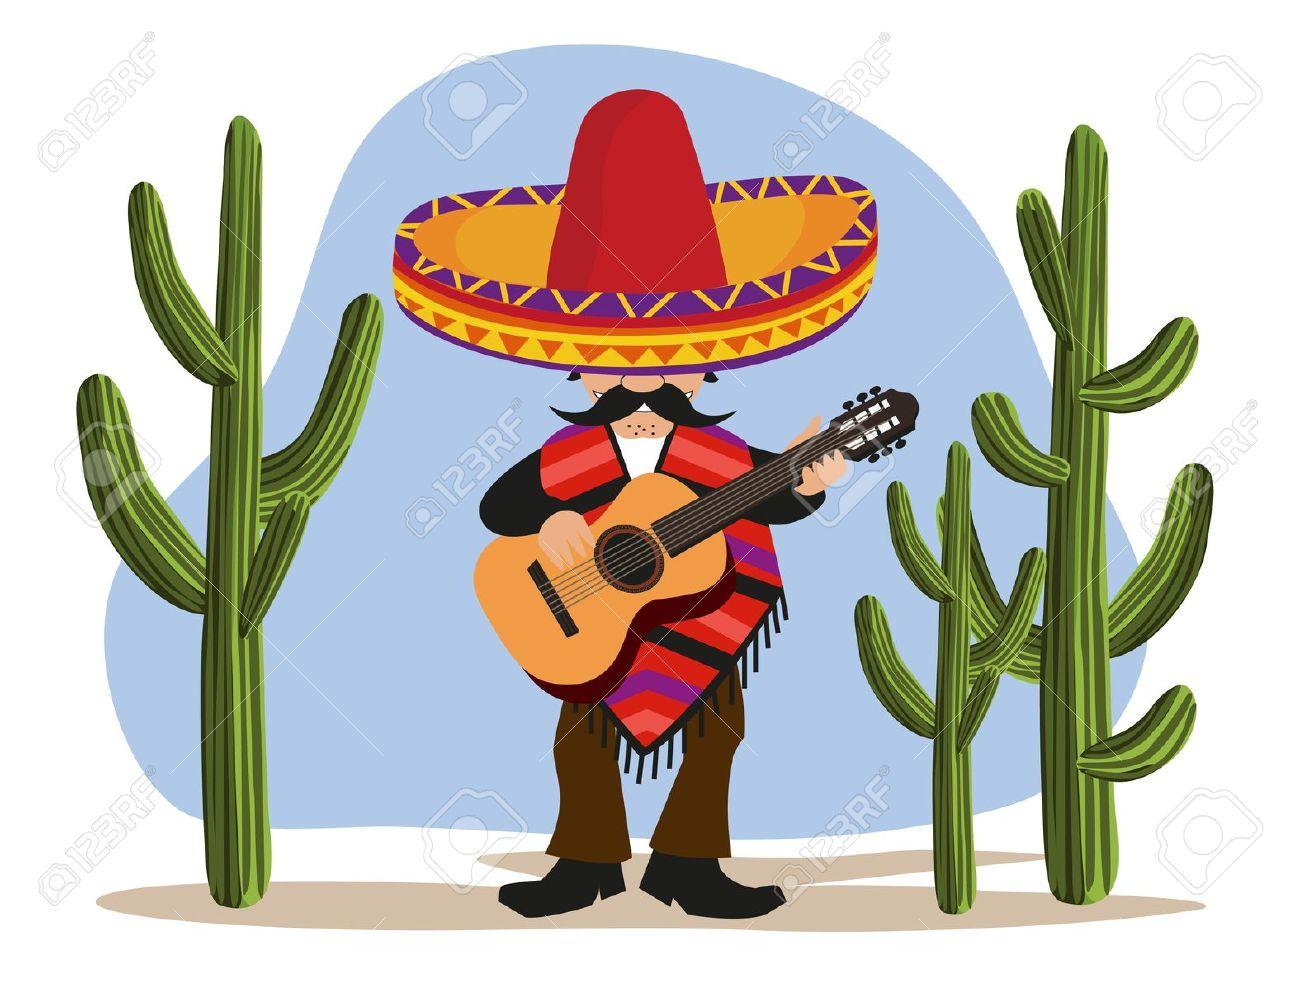 Mexican Playing Guitar Royalty Free Cliparts, Vectors, And Stock.